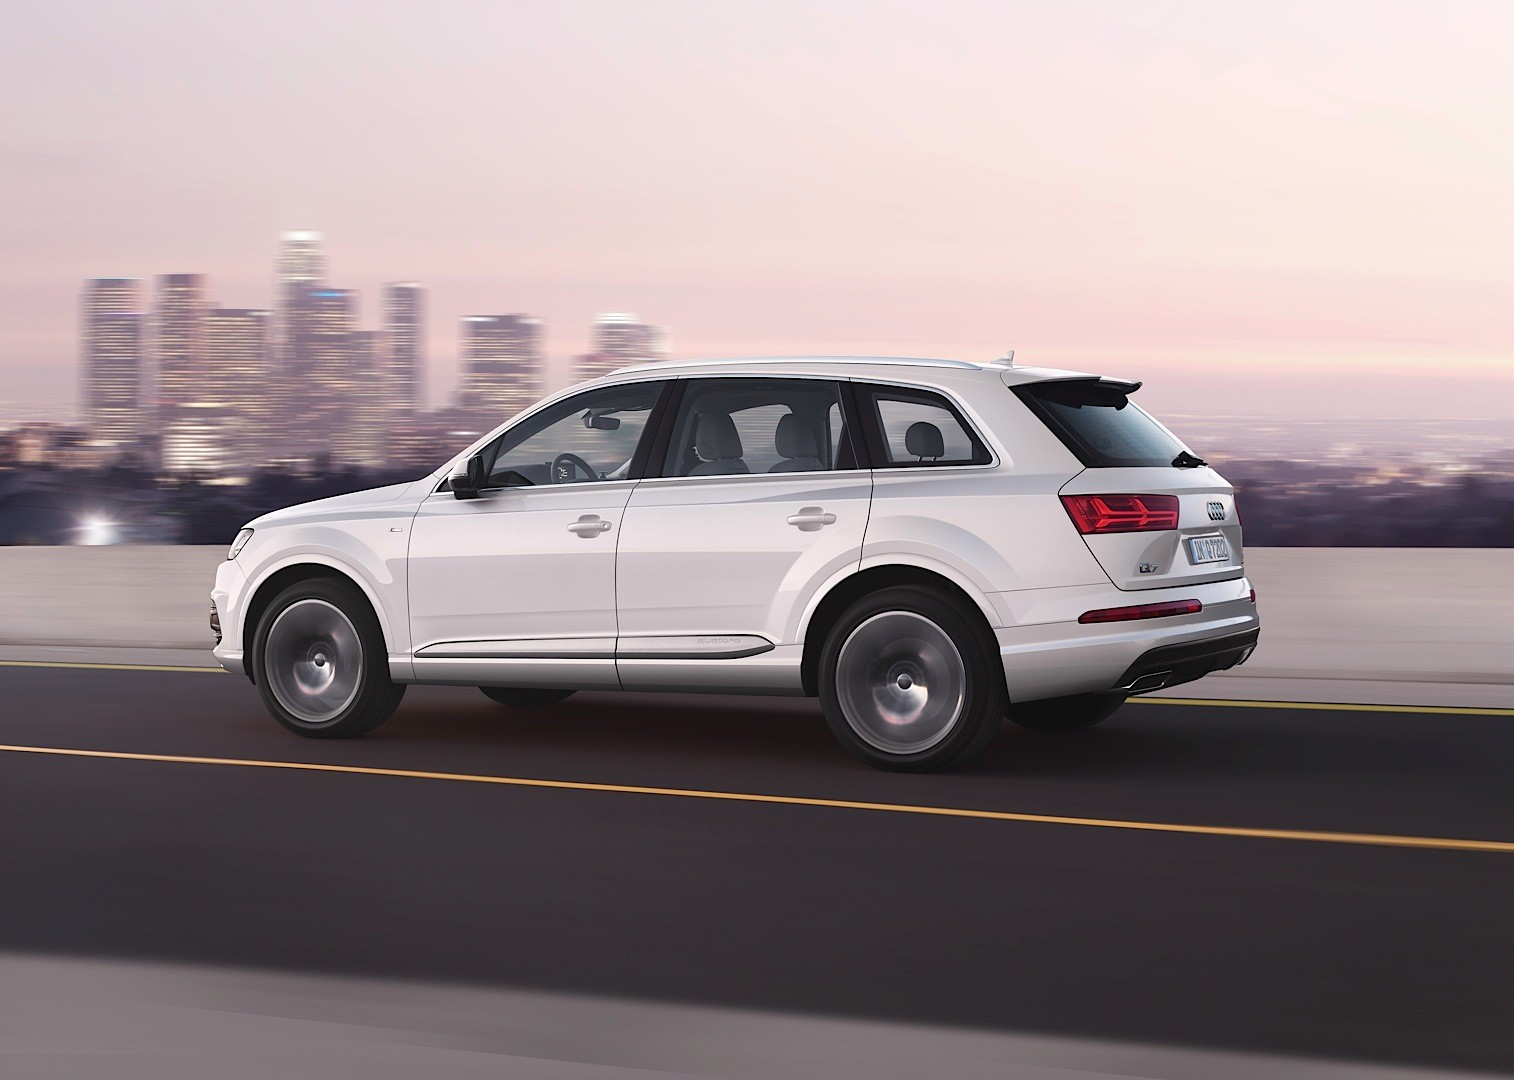 Audi Shows 2015 Q7 in New Tofana White Color, Reveals Obsession ...